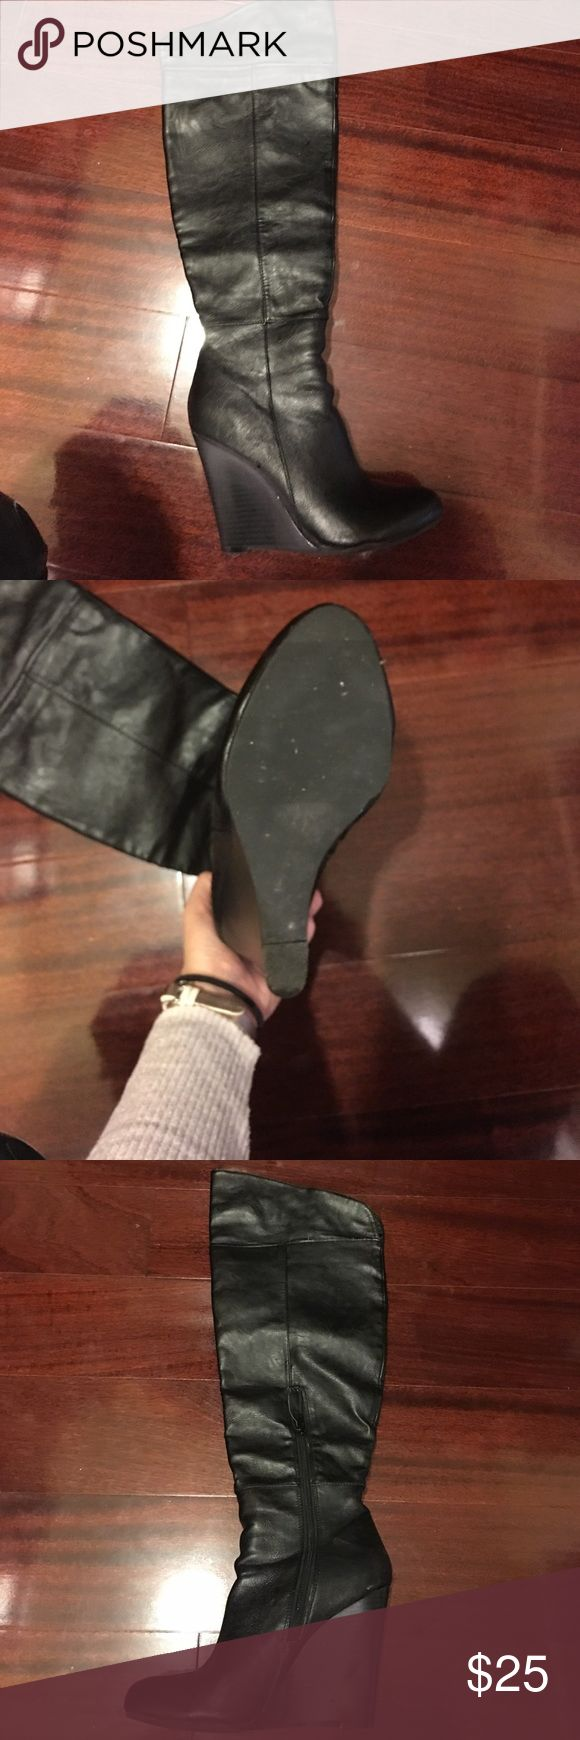 Black knee high wedge boots Black knee high size 7 Maurice's wedge boots. In great condition. Maurices Shoes Wedges